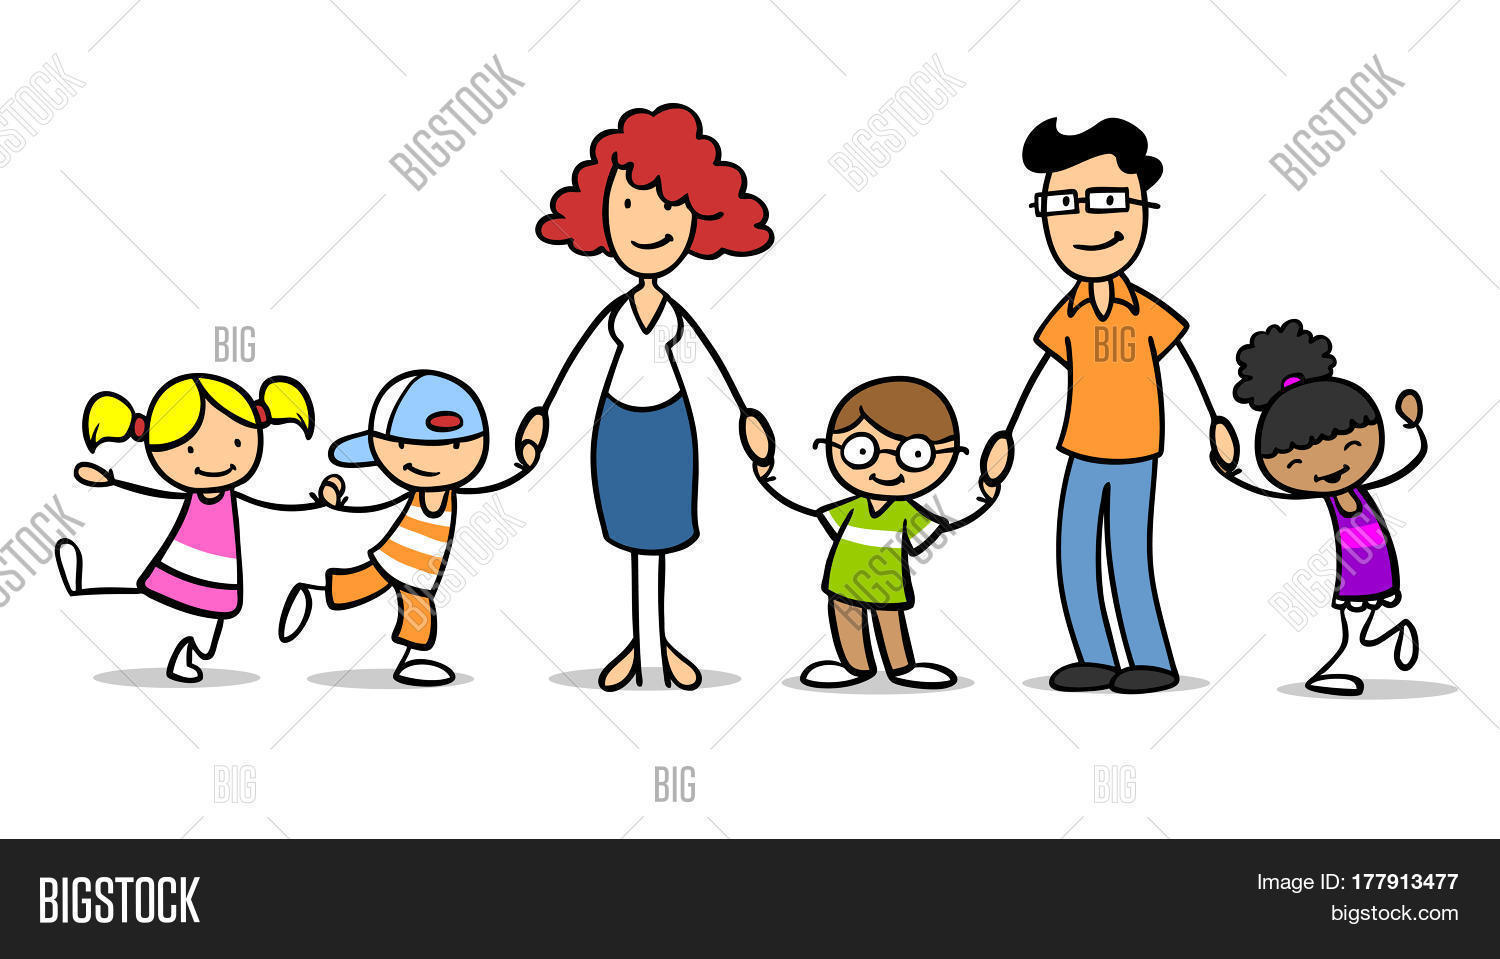 Different Happy Cartoon Children In A Foster Family Or Adoptive